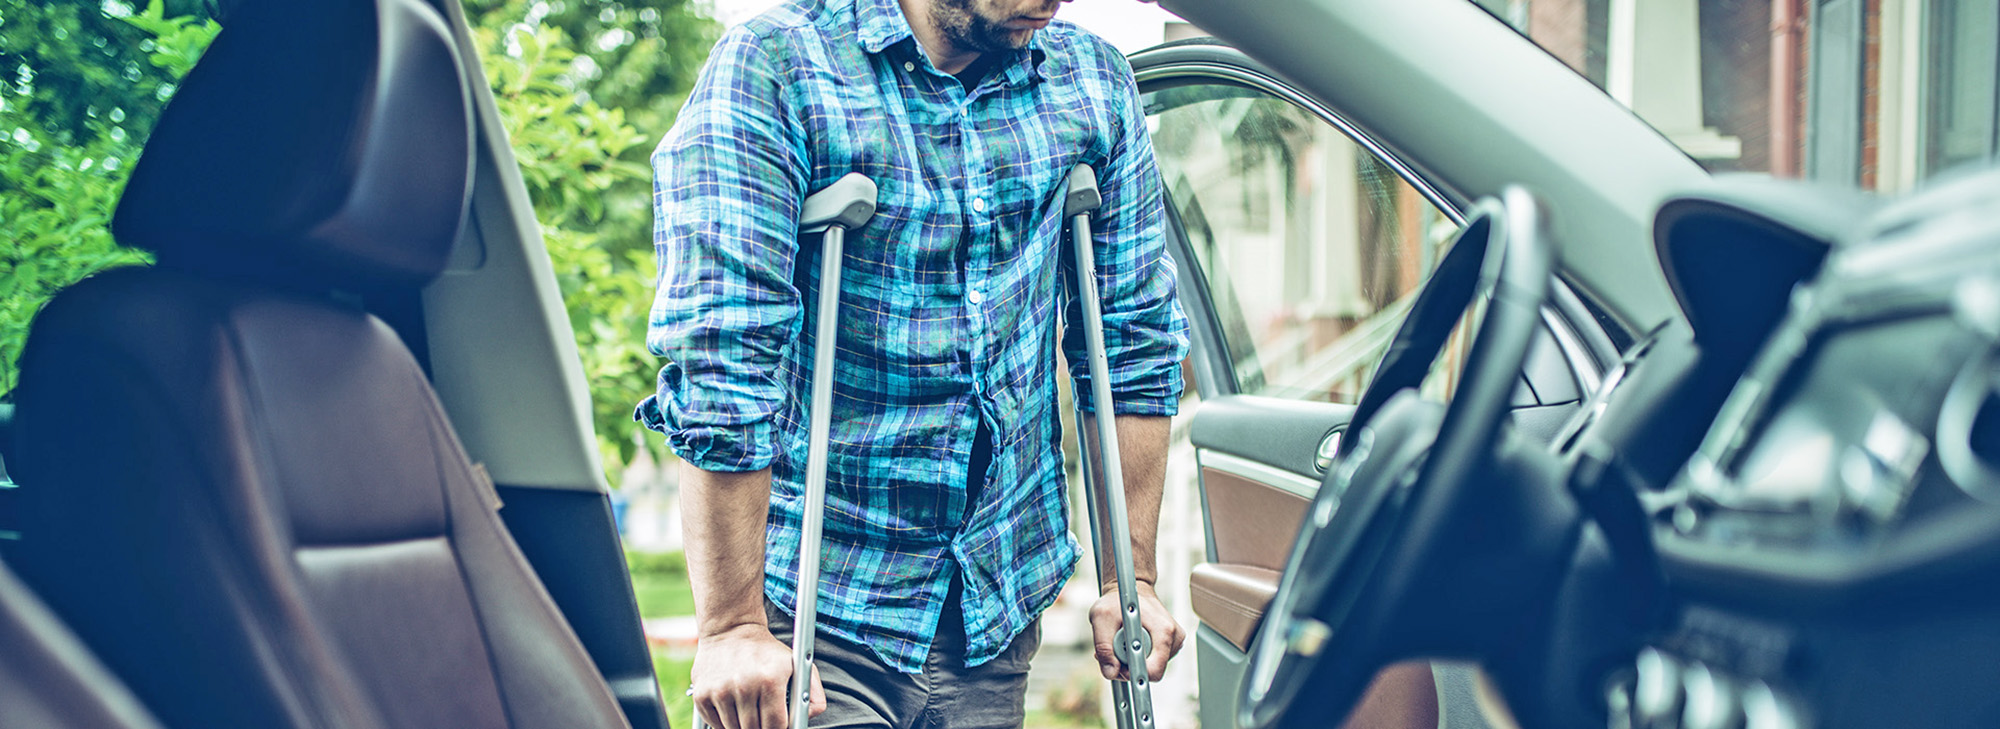 man using crutches to get into car. image represents home, auto, health and life insurance all in one.